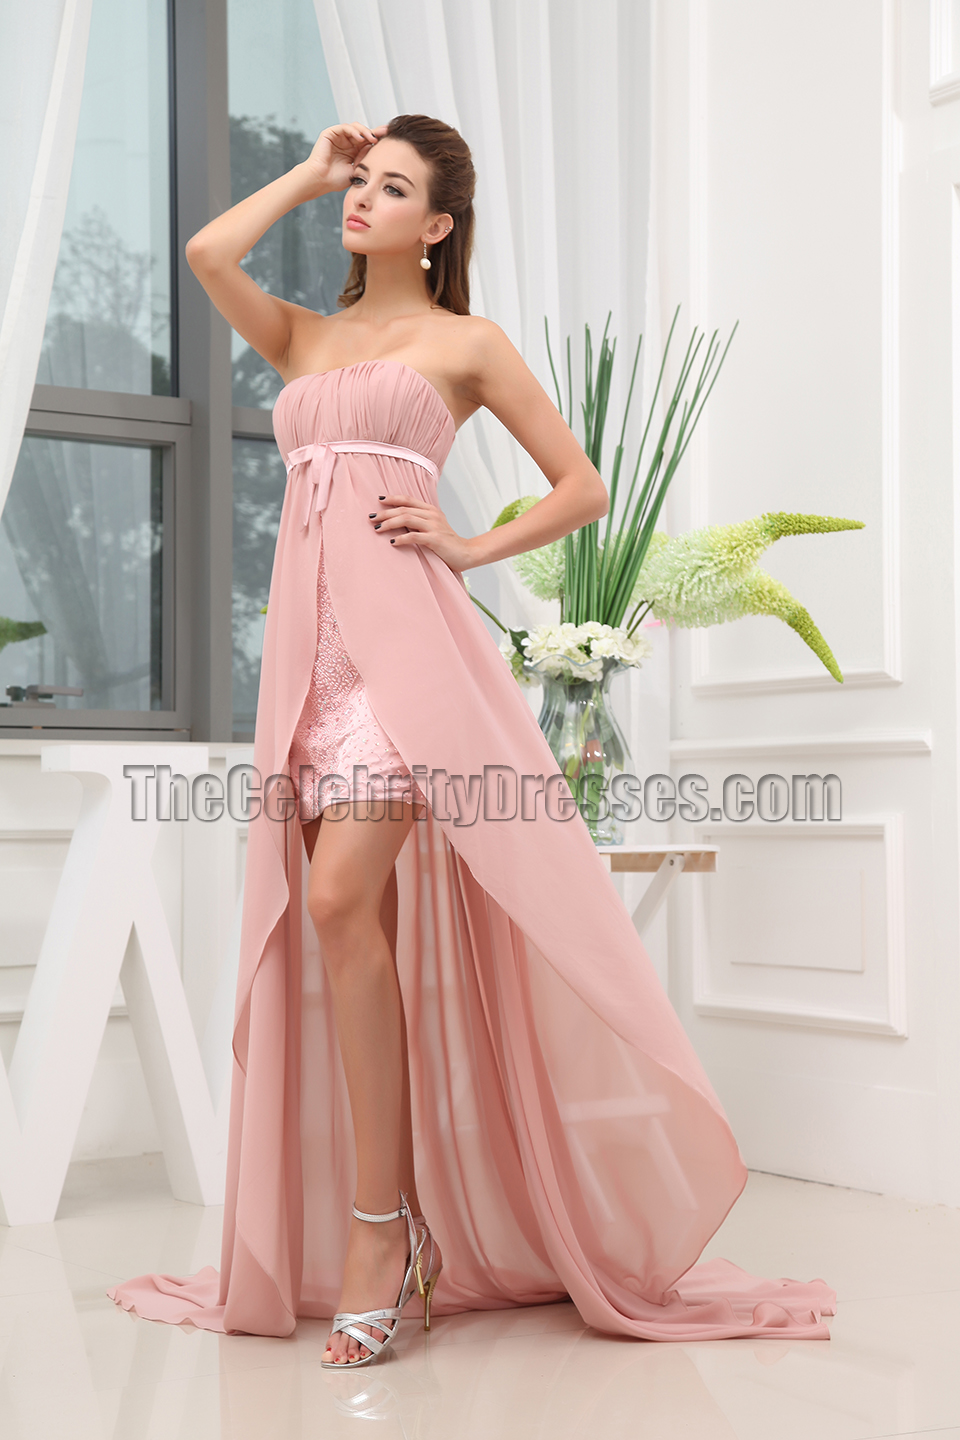 best daytime wedding guest dresses summer dresses for wedding High Low Pink Chiffon Strapless Prom Dress Evening Gowns Thecelebritydresses